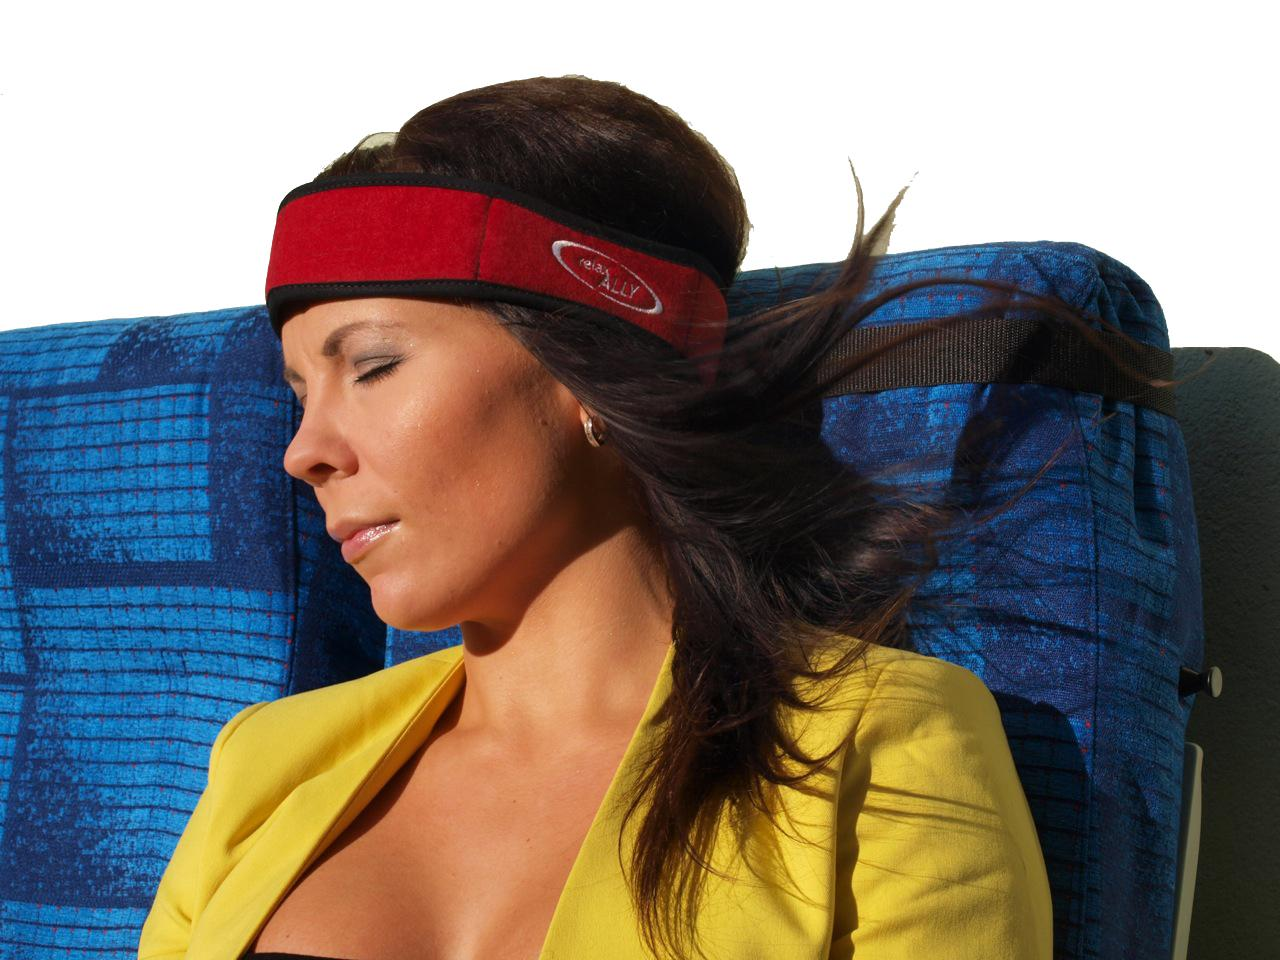 The Relax ALLY Restband in use